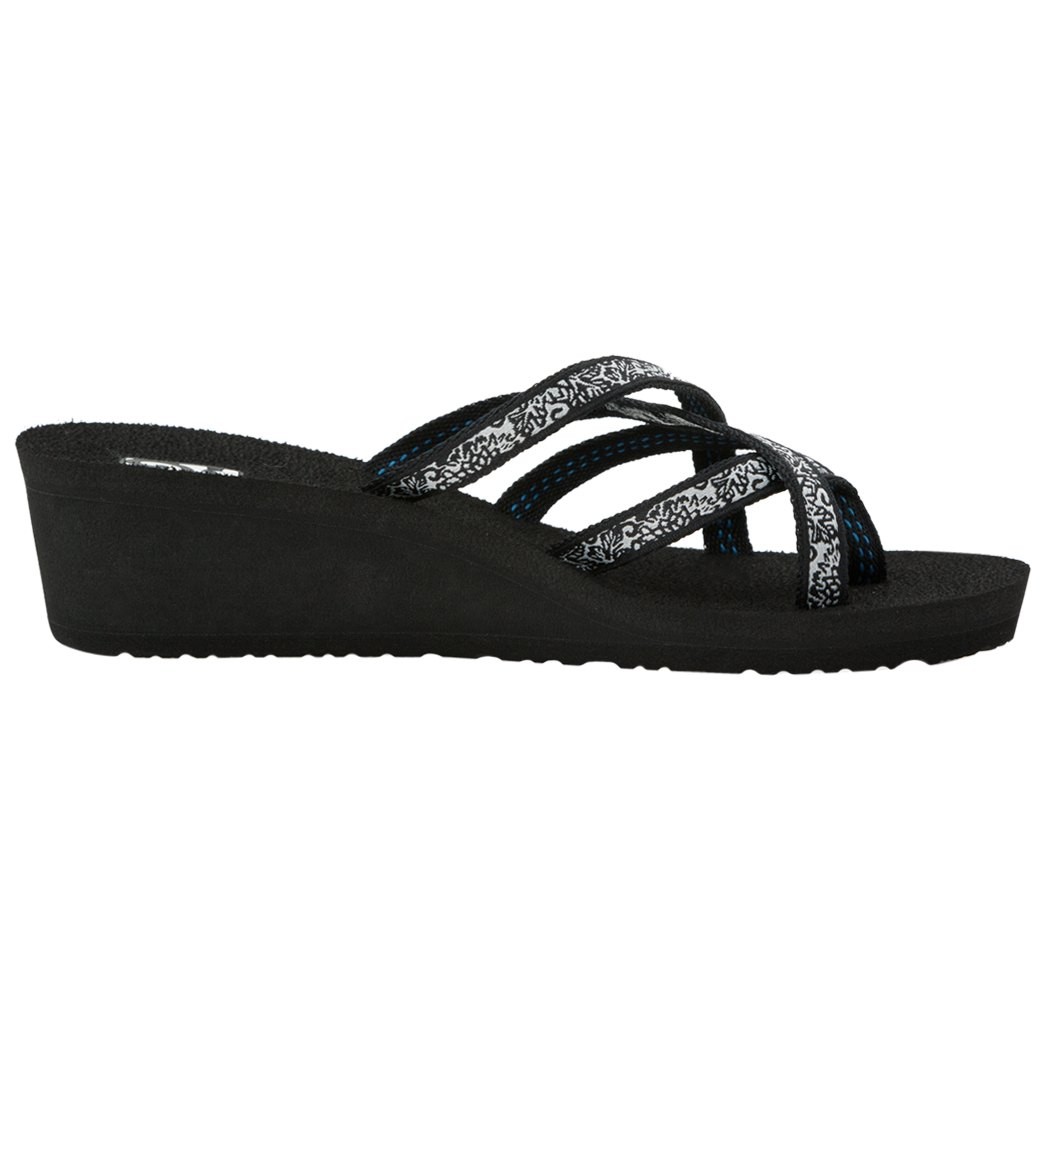 748ae31de12f4 Teva Women s Mush Mandalyn Wedge Ola 2 Sandal at SwimOutlet.com